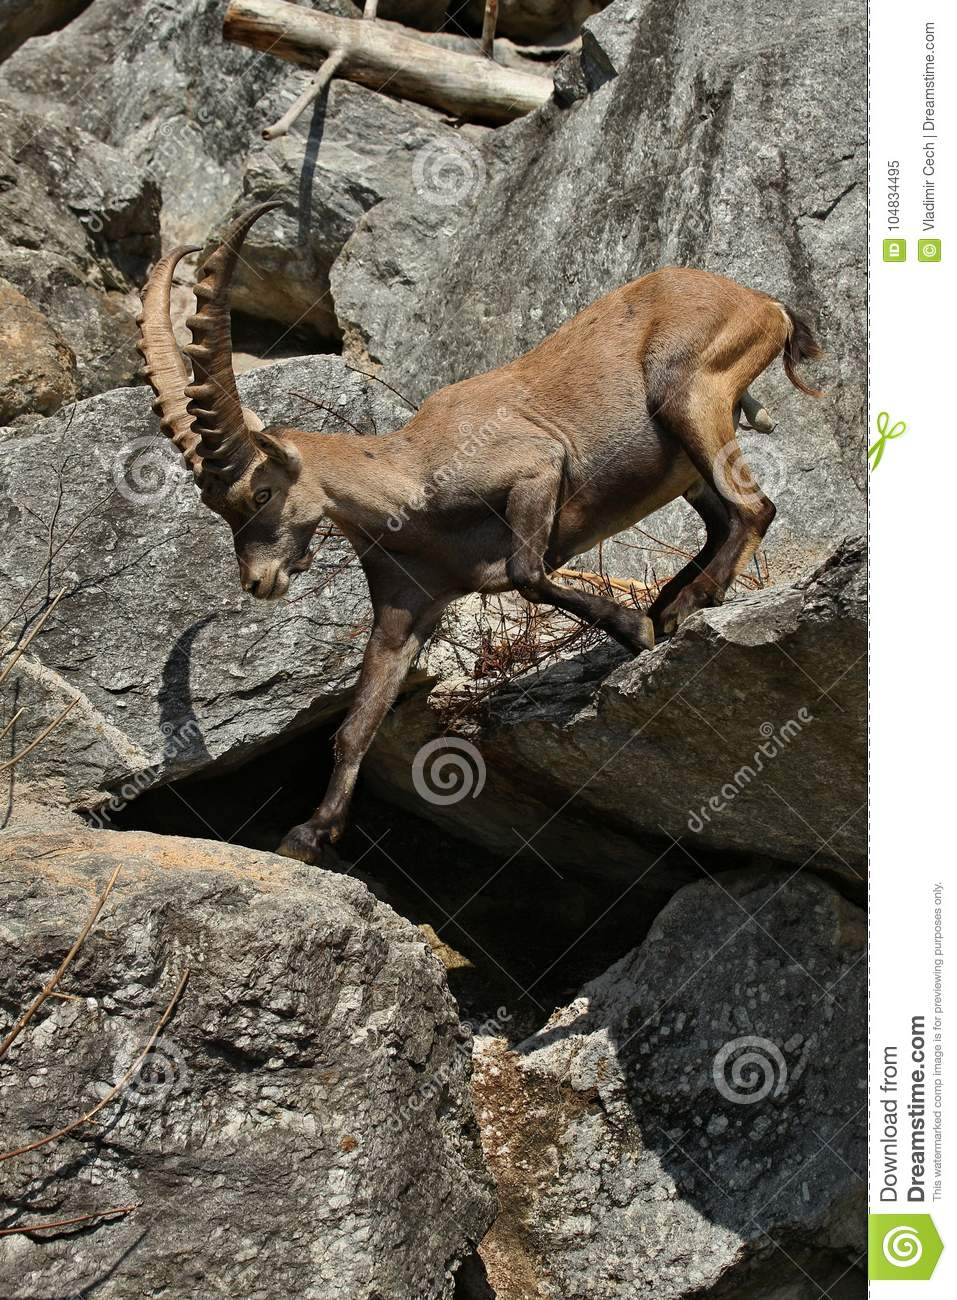 Ibex fight in the rocky mountain area